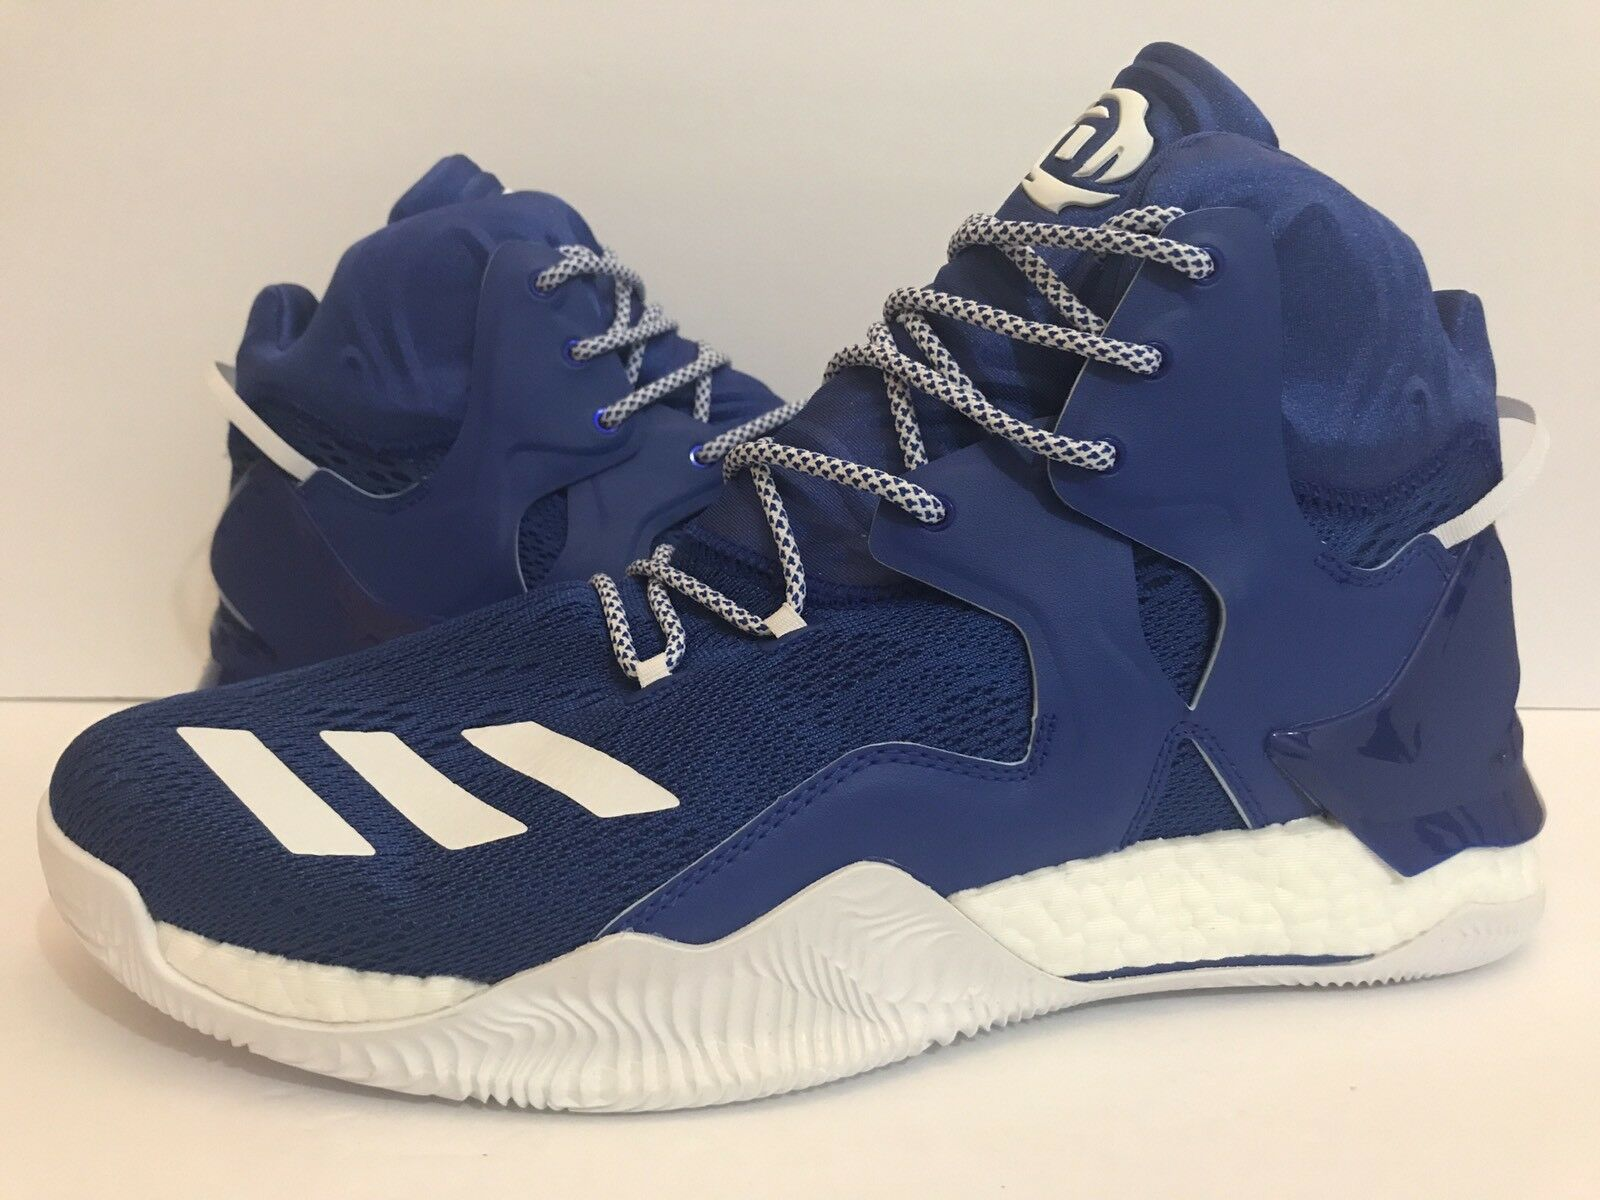 Adidas D Rose 7 Boost Basketball Shoes B38922 RoyalBlue/White Sz 13.5 15